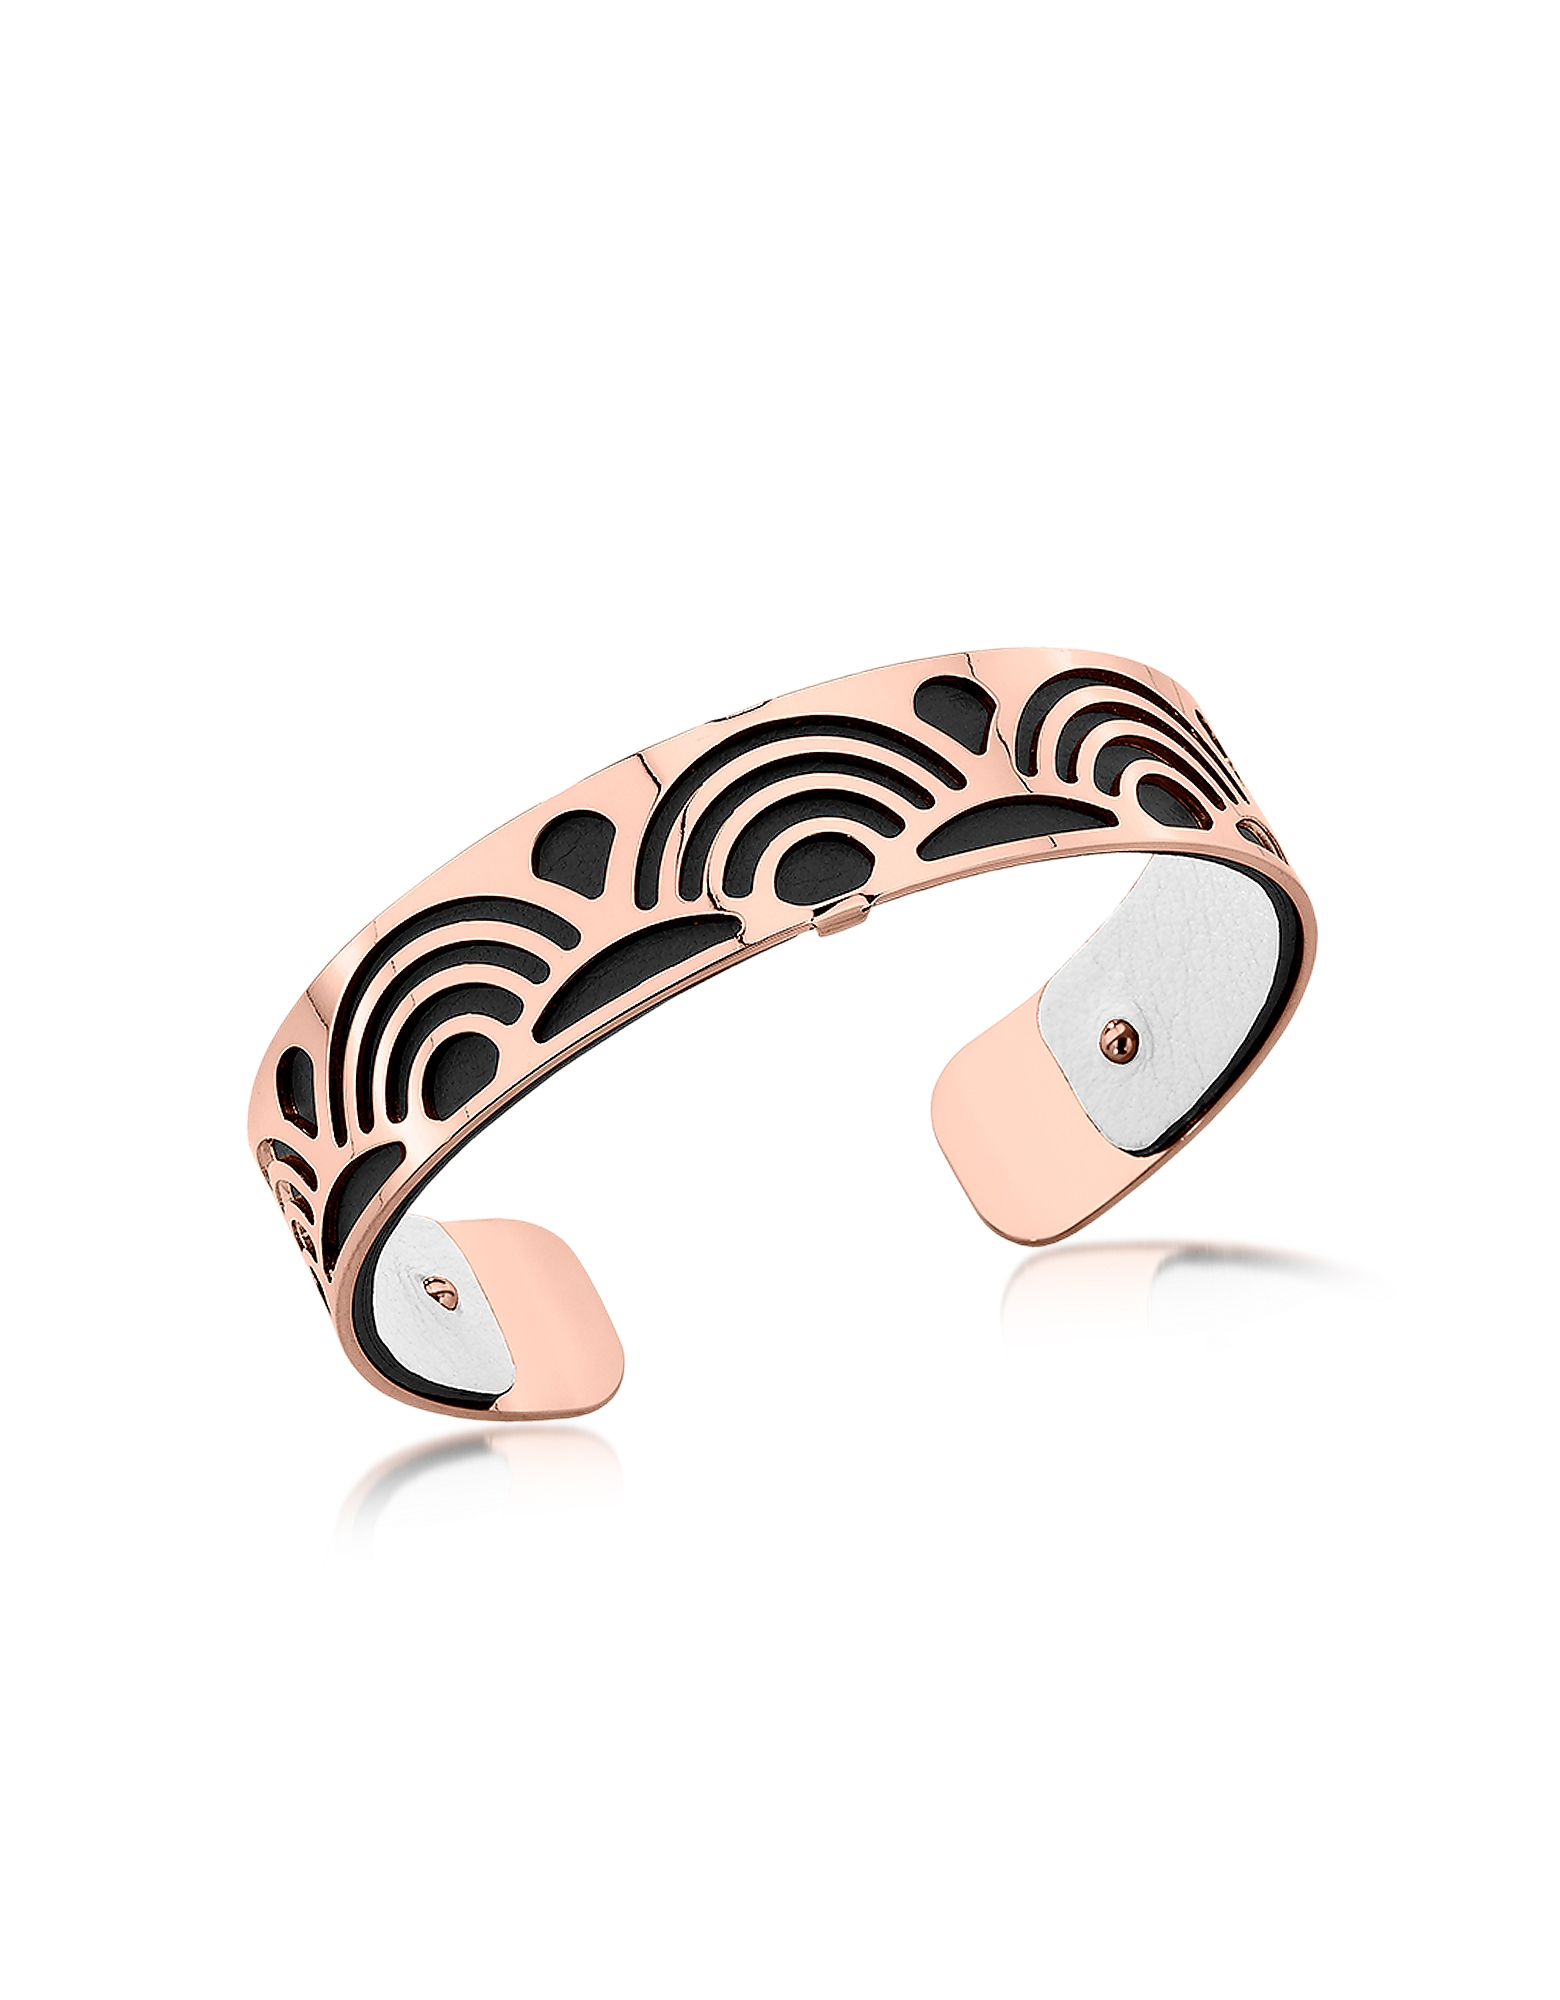 Les Georgettes Bracelets, Small Poisson Rose Gold Plated Bracelet w/Black and White Reversible Leath